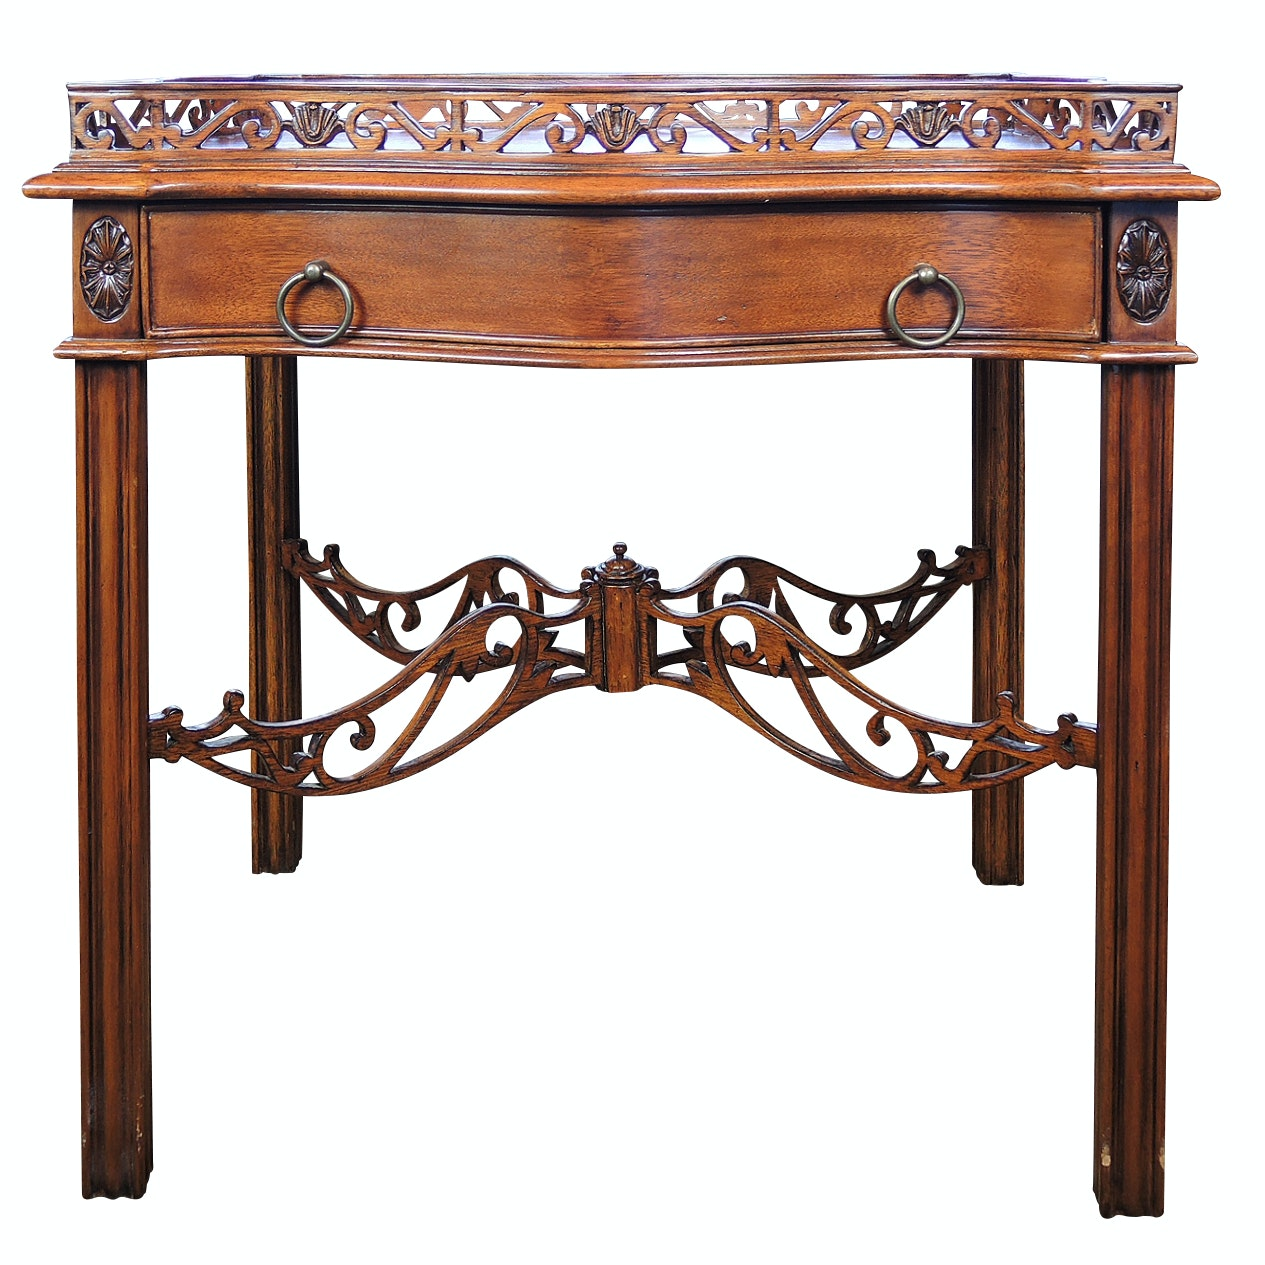 Chippendale Style Galleried Mahogany Finish Wooden Table, Contemporary